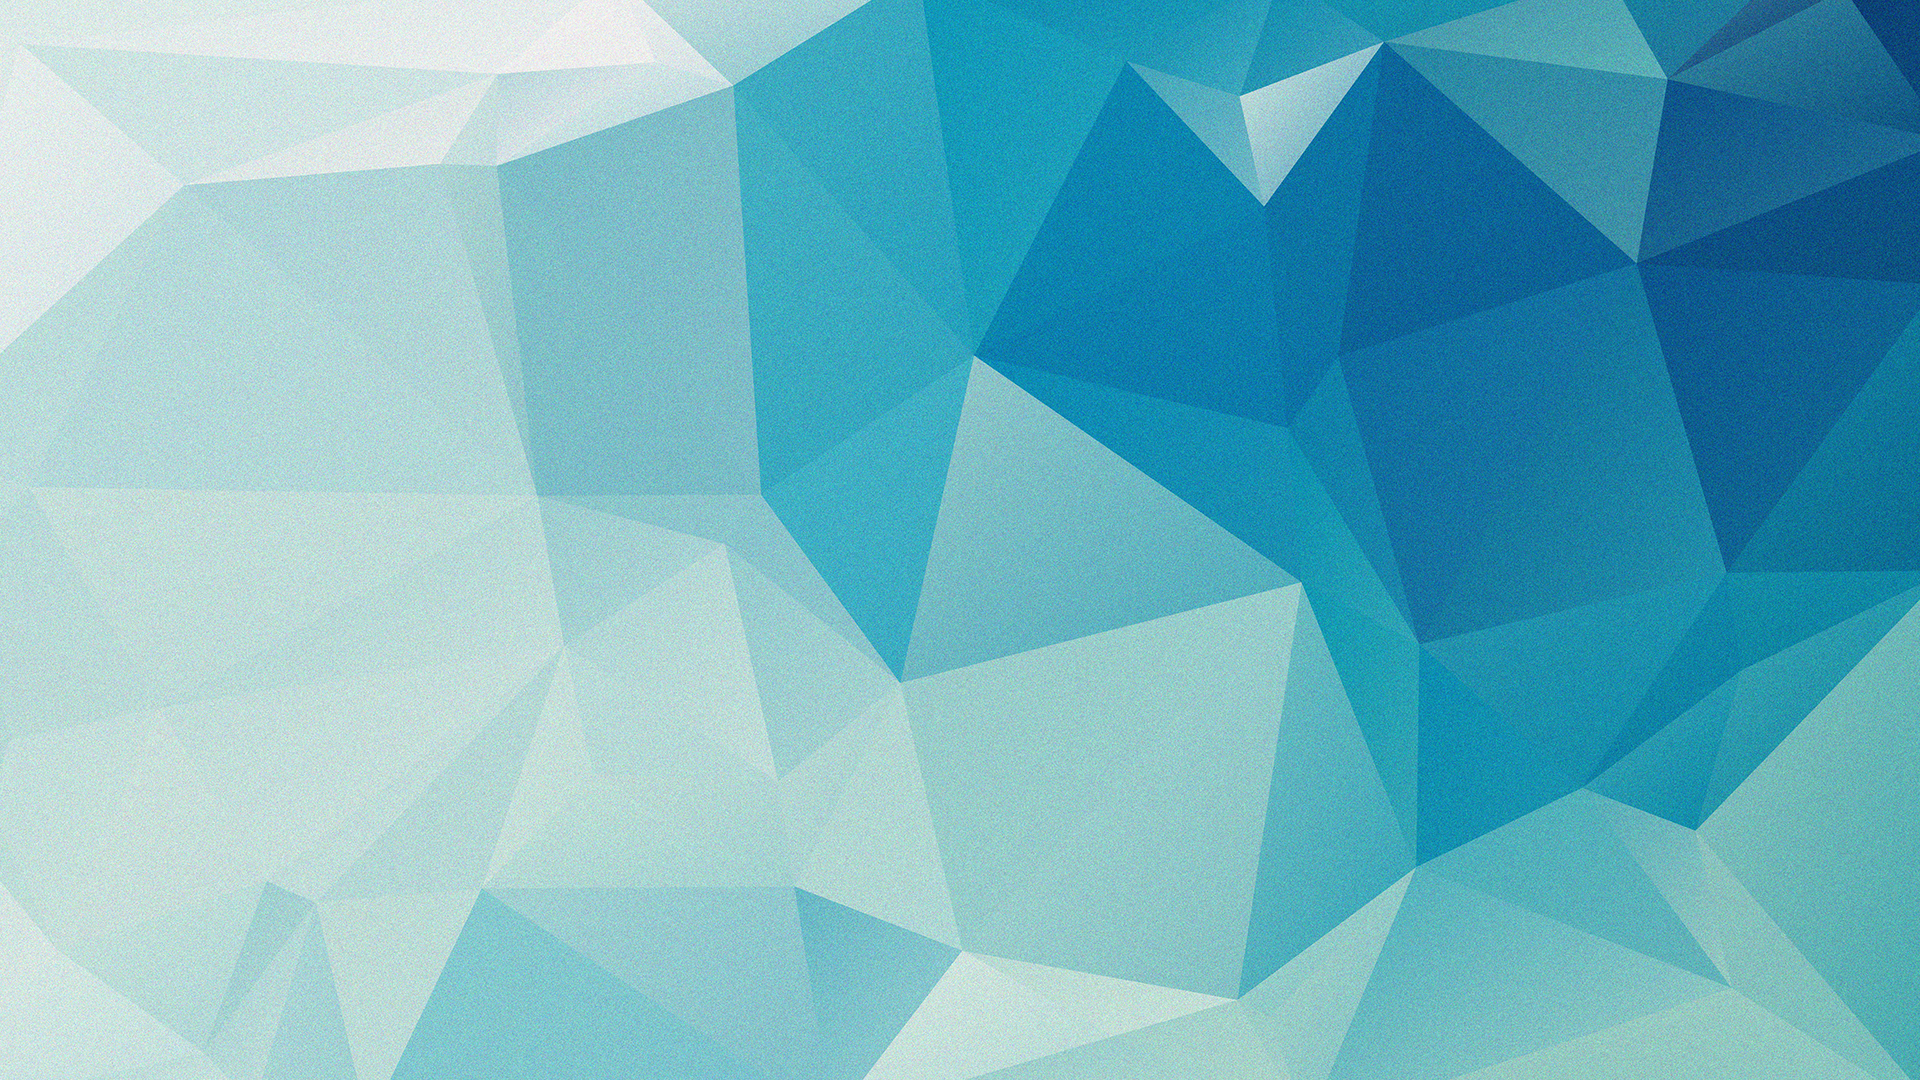 Polygon-Background-2.jpg (immagine JPEG, 1920 × 1080 pixel)